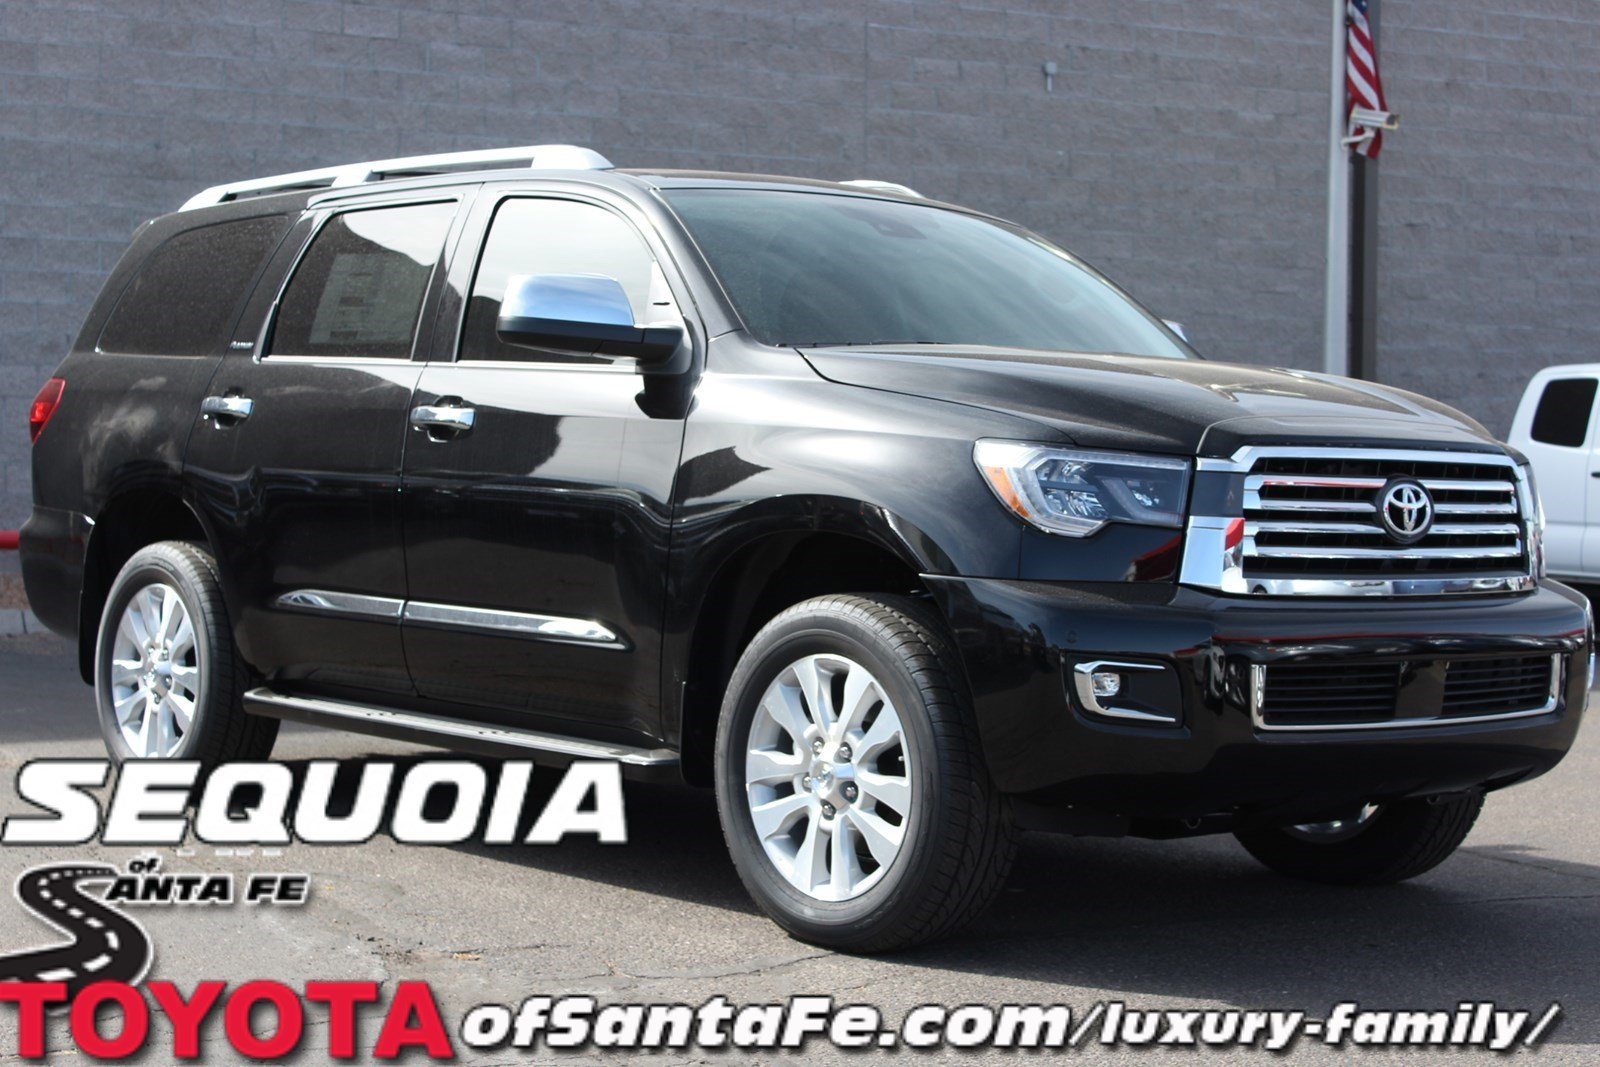 trd inventory drive toyota fayetteville at sport suv sequoia four wheel new of